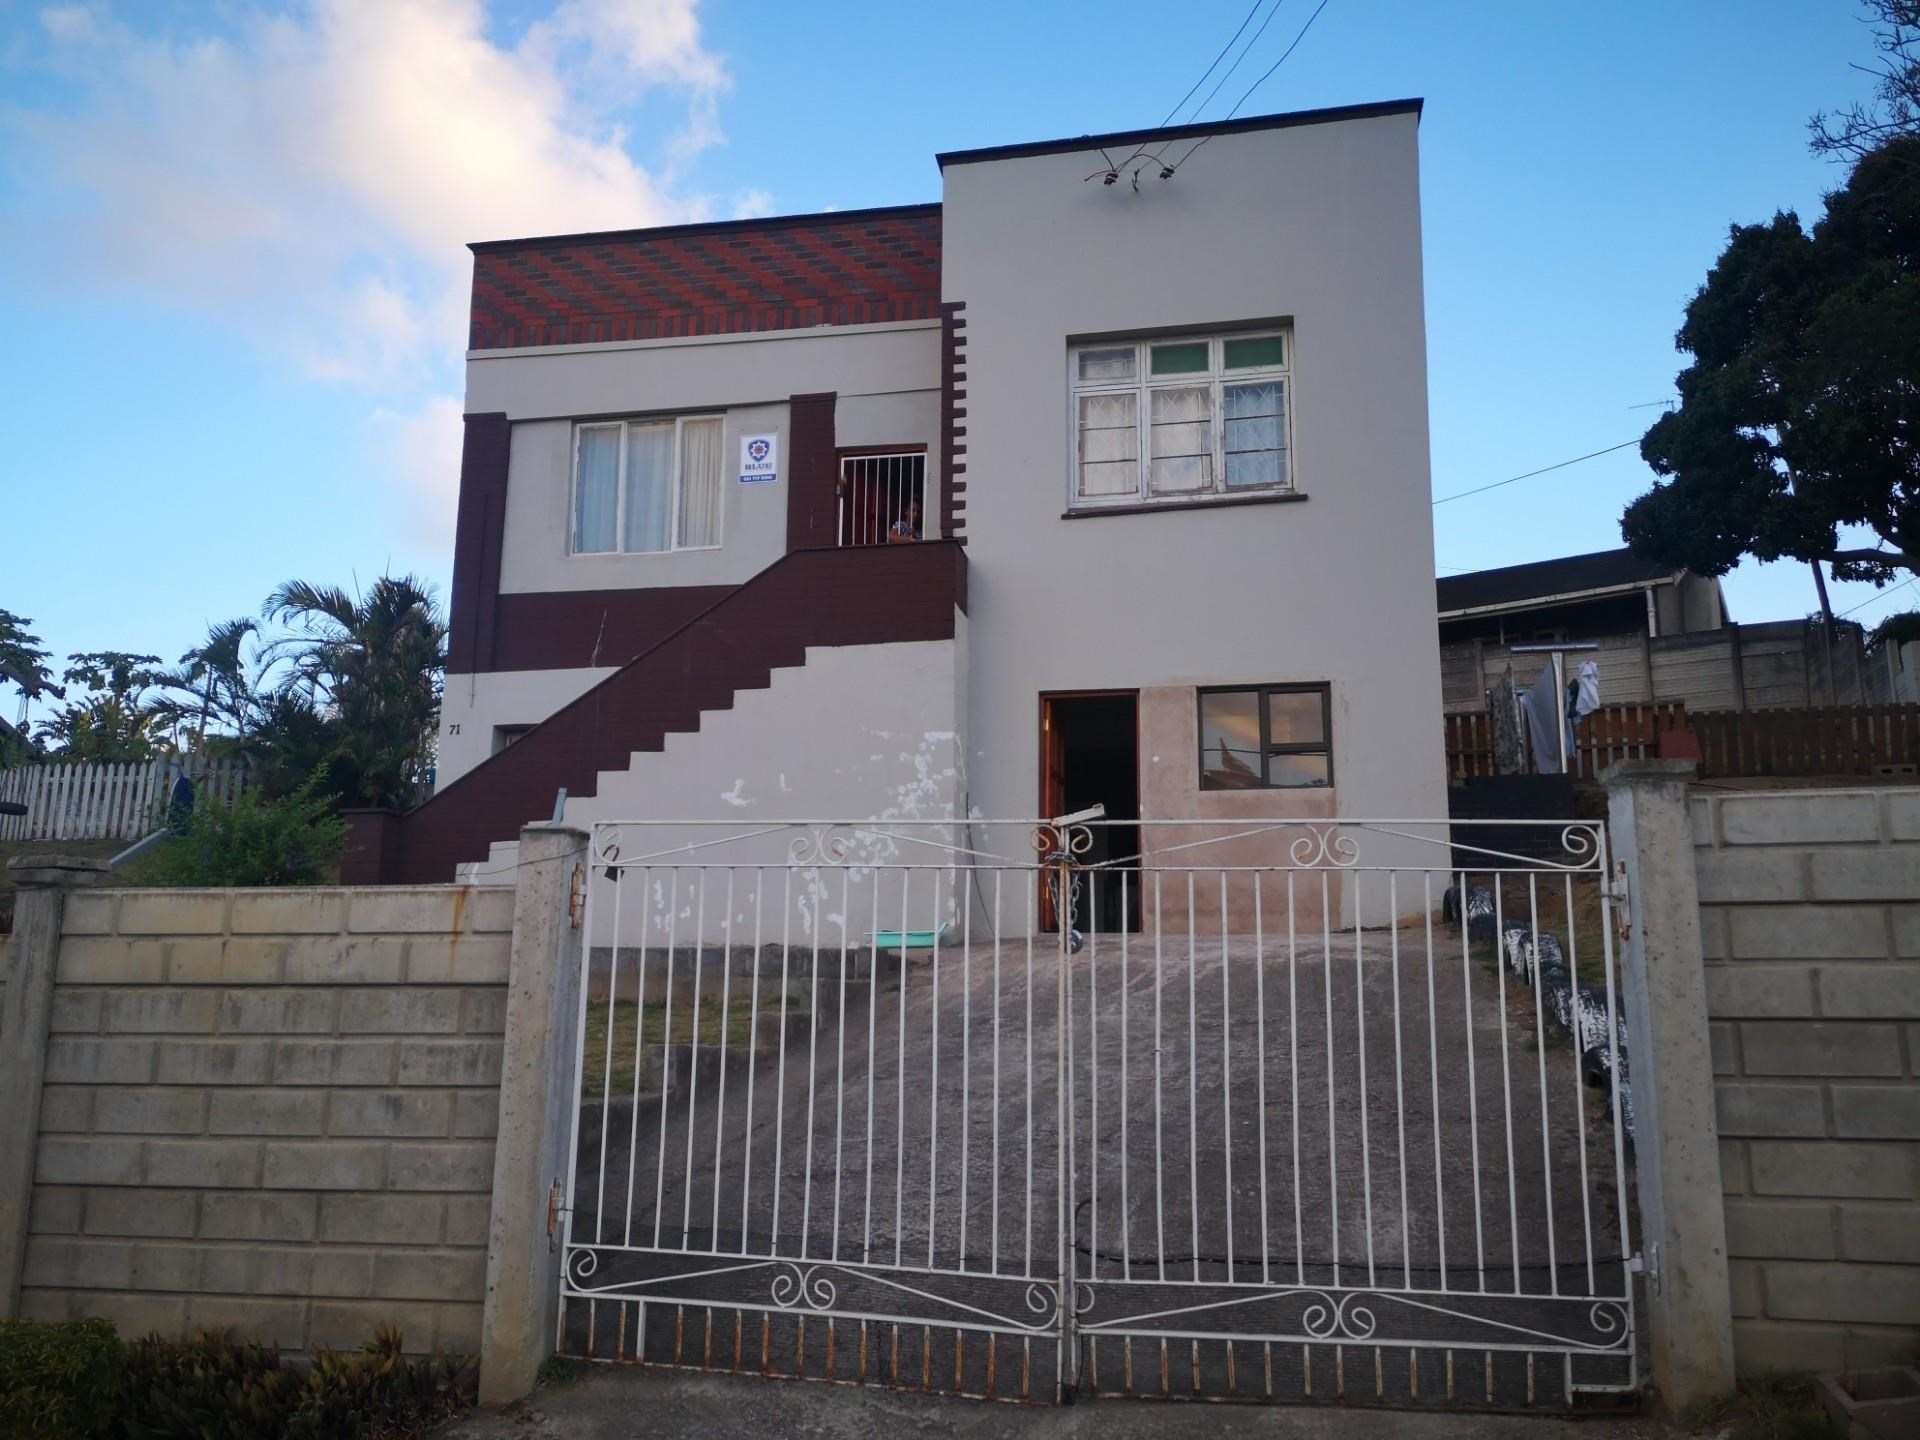 3 Bedroom House for Sale in Mount Vernon